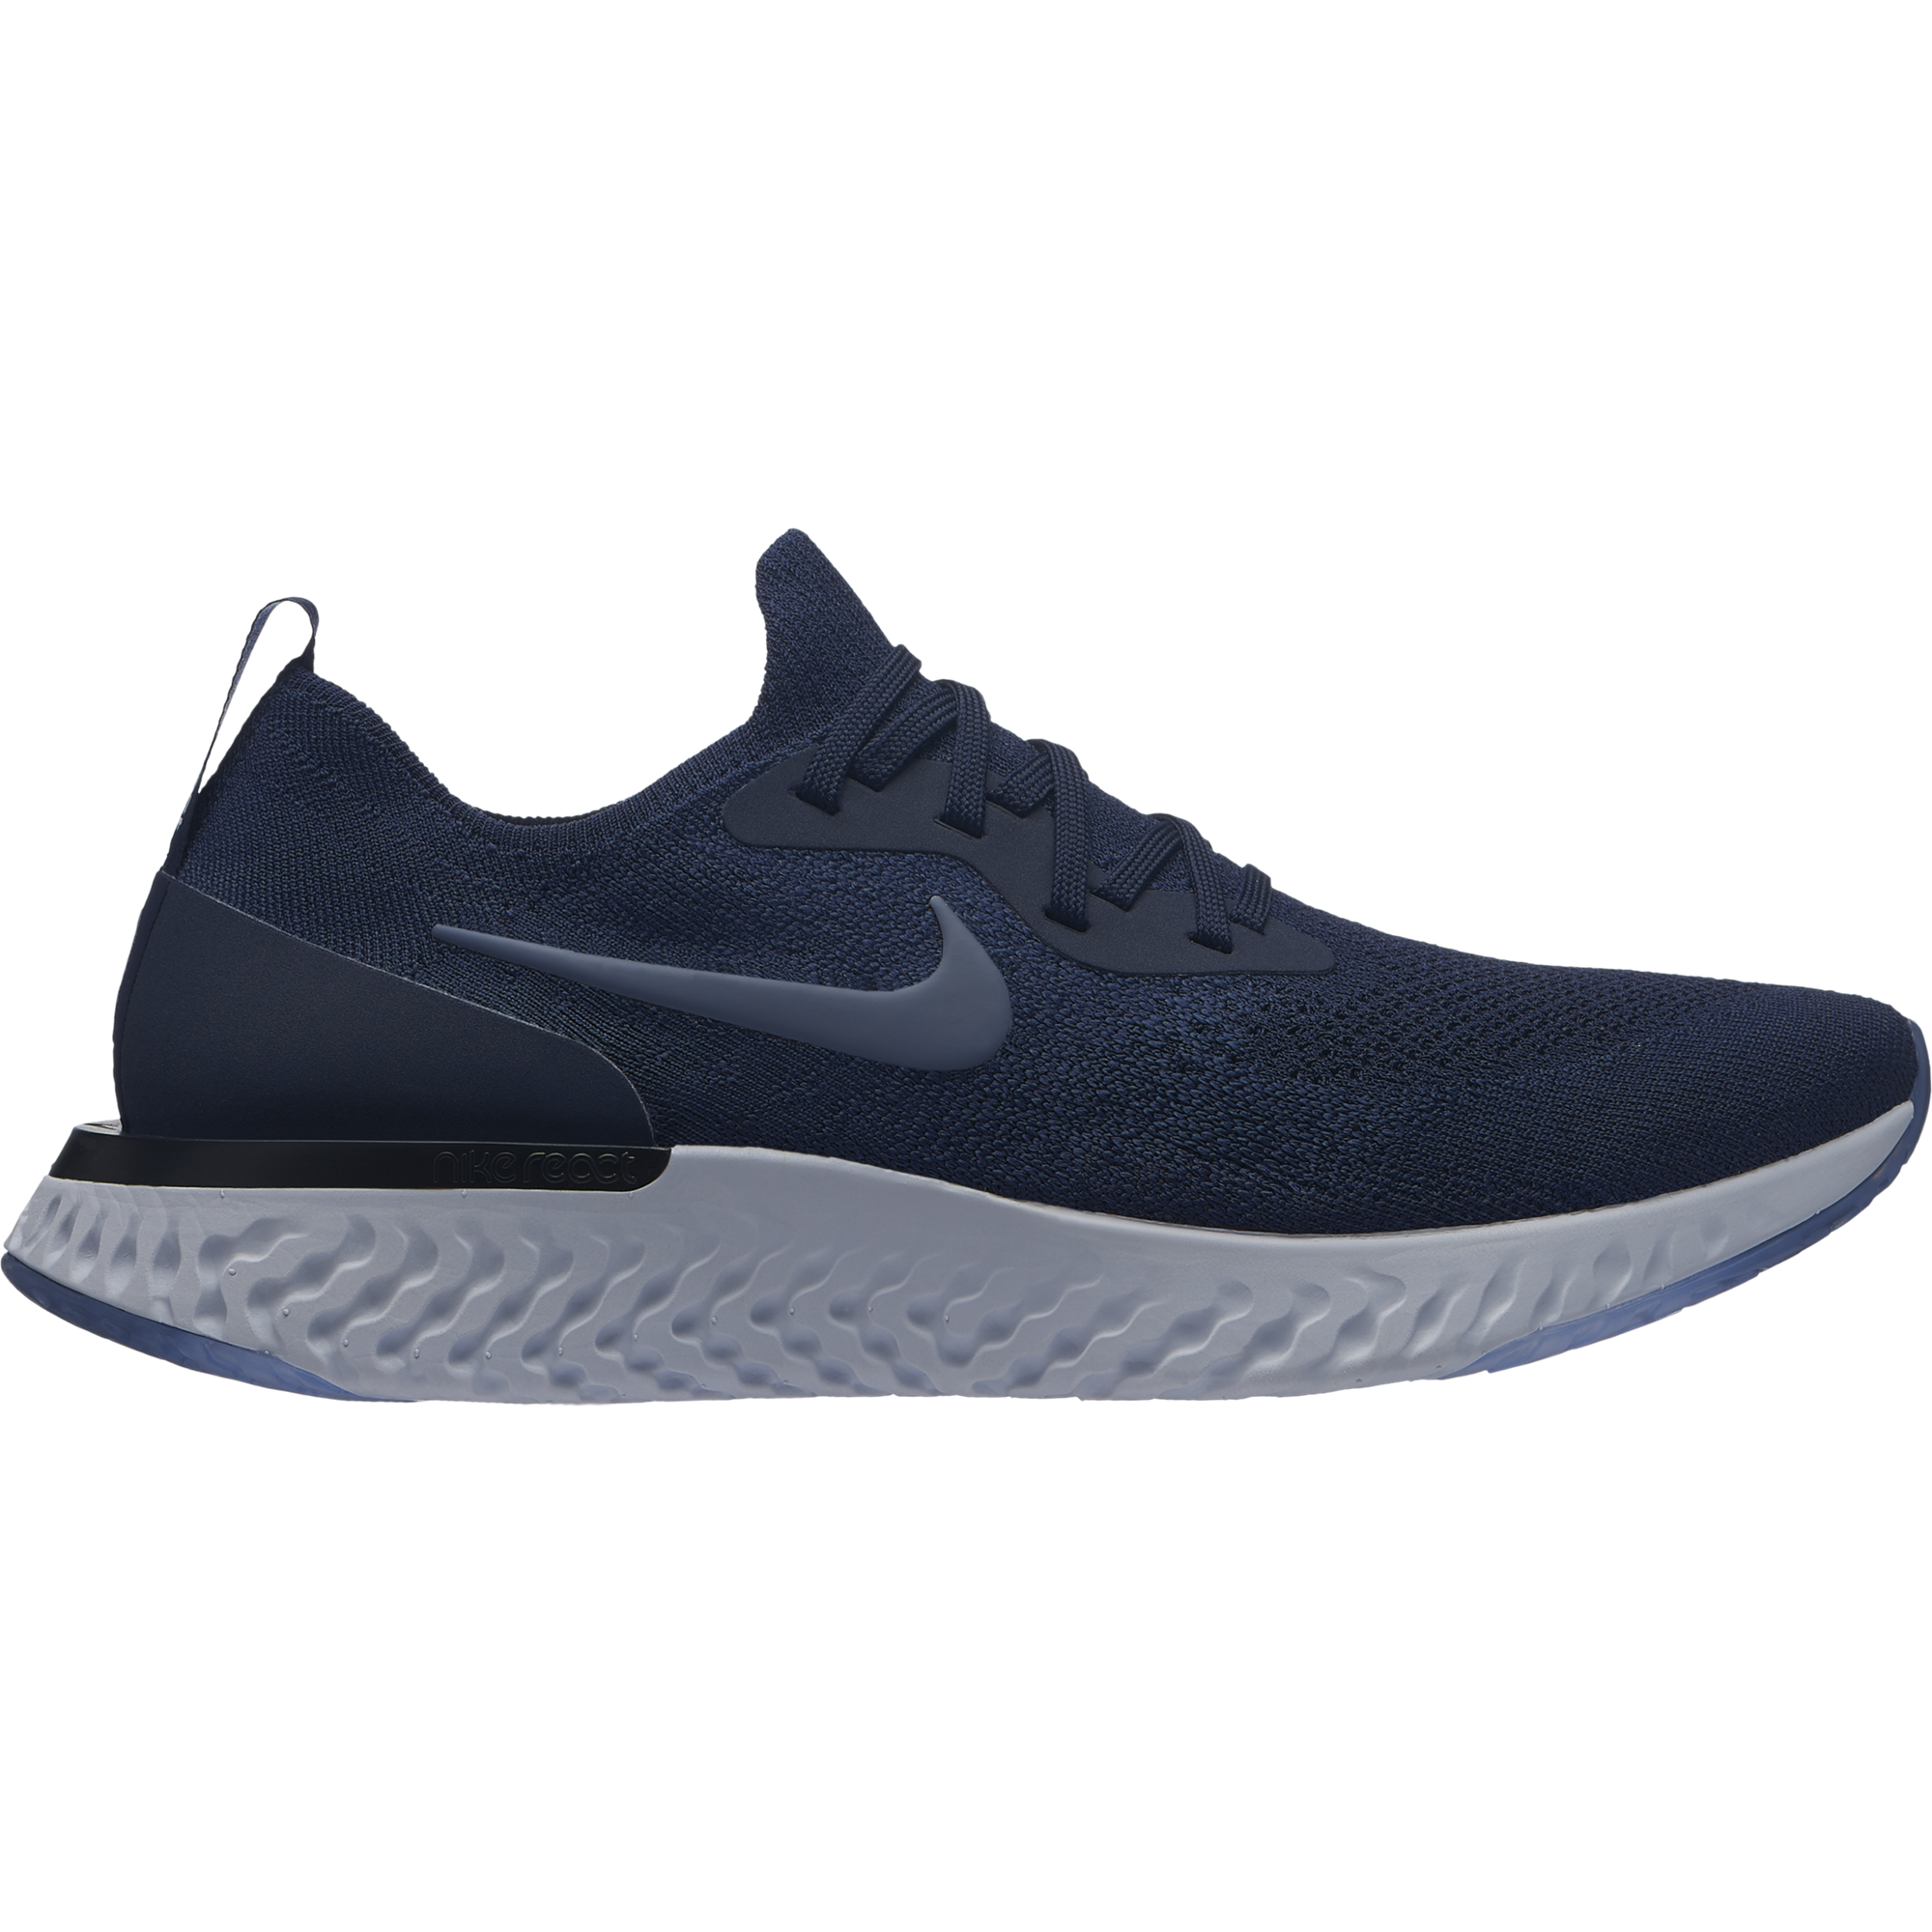 a2c0c06083d7 Men s Epic React Flyknit Running Shoe - College Navy Diffused Blue Foo –  Gazelle Sports